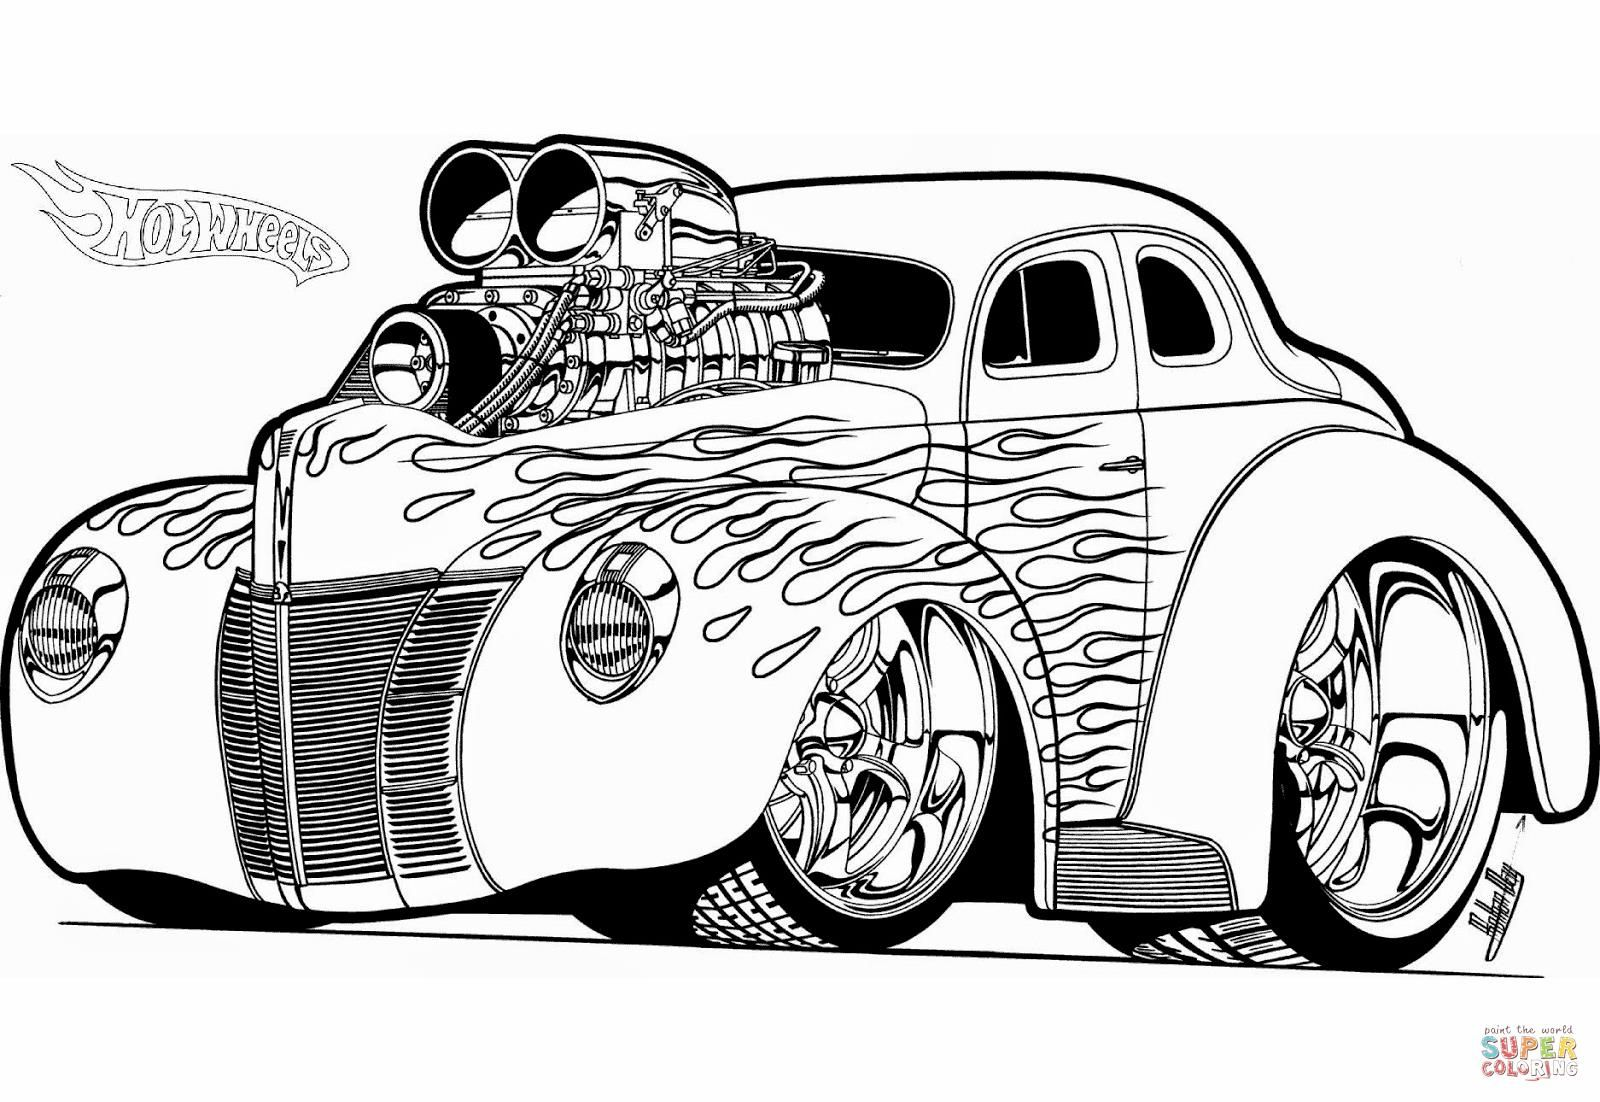 http://colorings.co/hot-rod-coloring-pages/ #Coloring, #Hot, #Pages ...